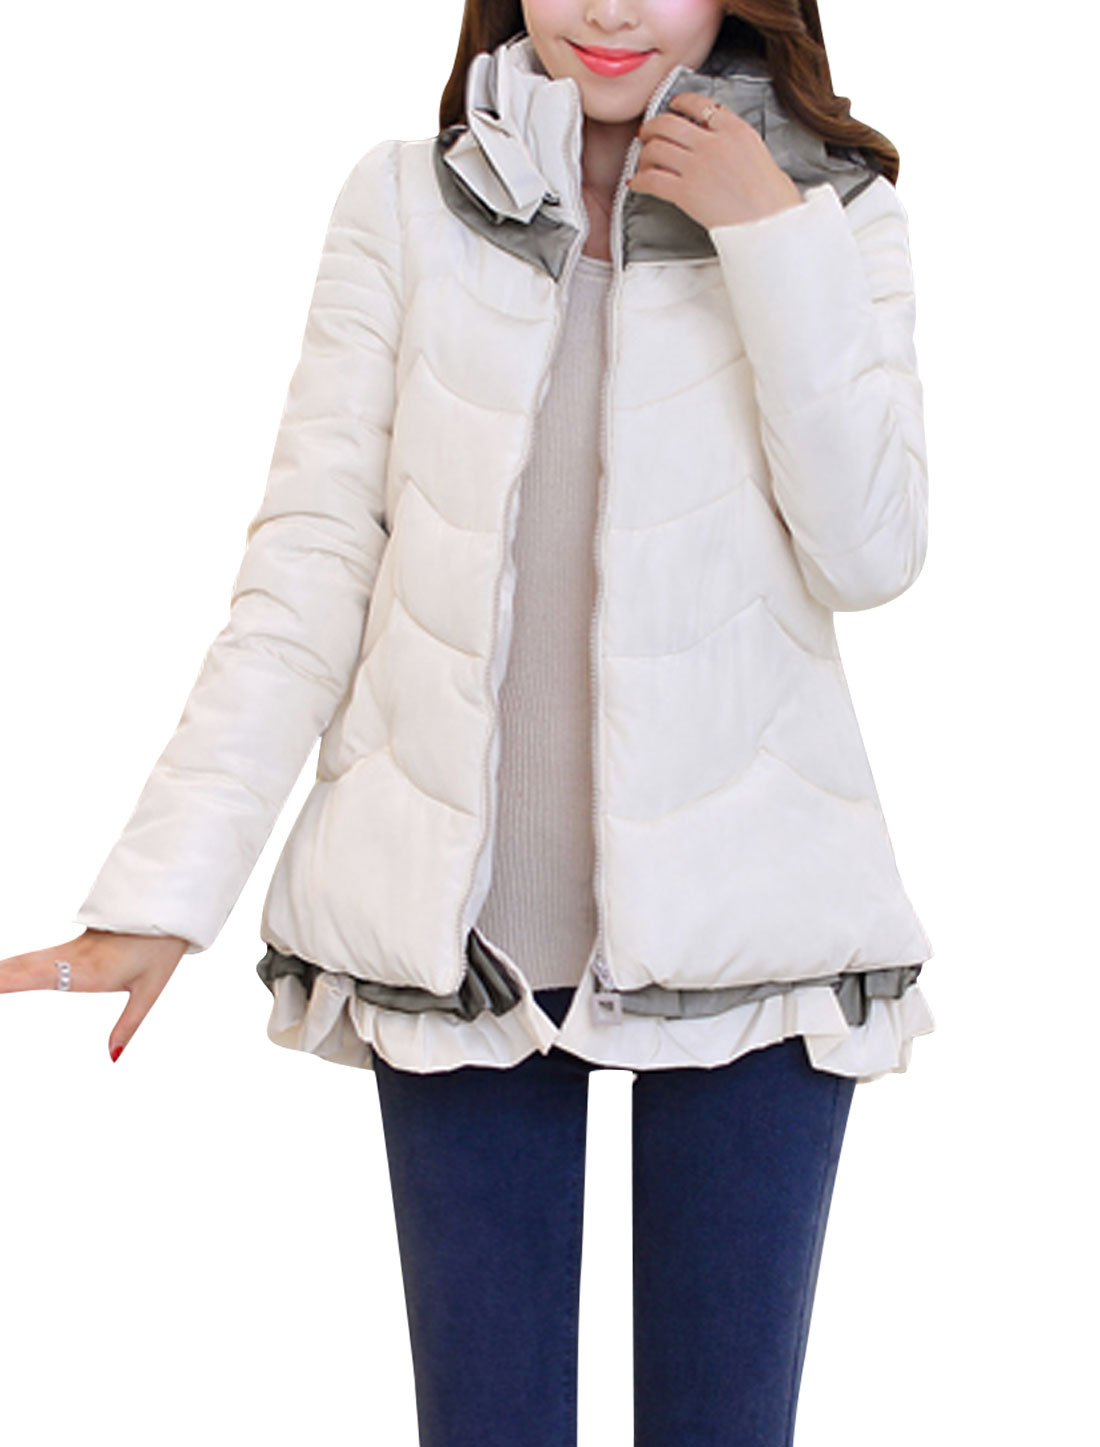 Lady Zipper Closure Double Side Pockets Ruffles Hem Down Jacket Beige M